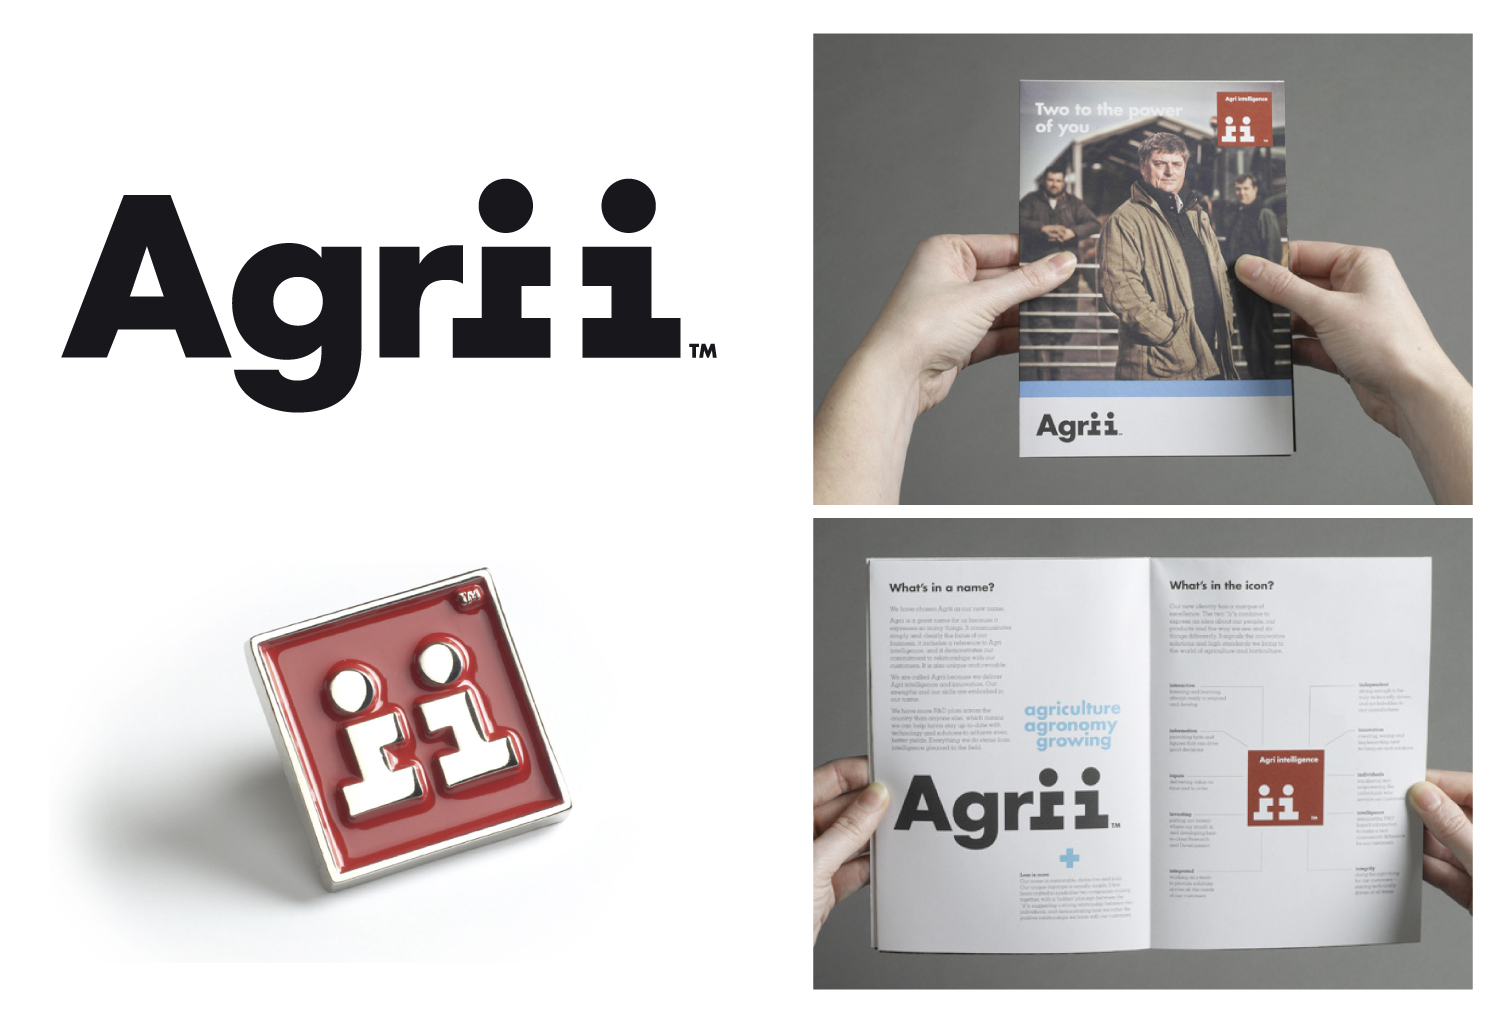 The Agrii marque makes clever use of the negative space with the two 'ii''s. This then gets pulled out and used as an independentidentifier. Introductory materials were produced to introduce the merger to the exisiting employees.